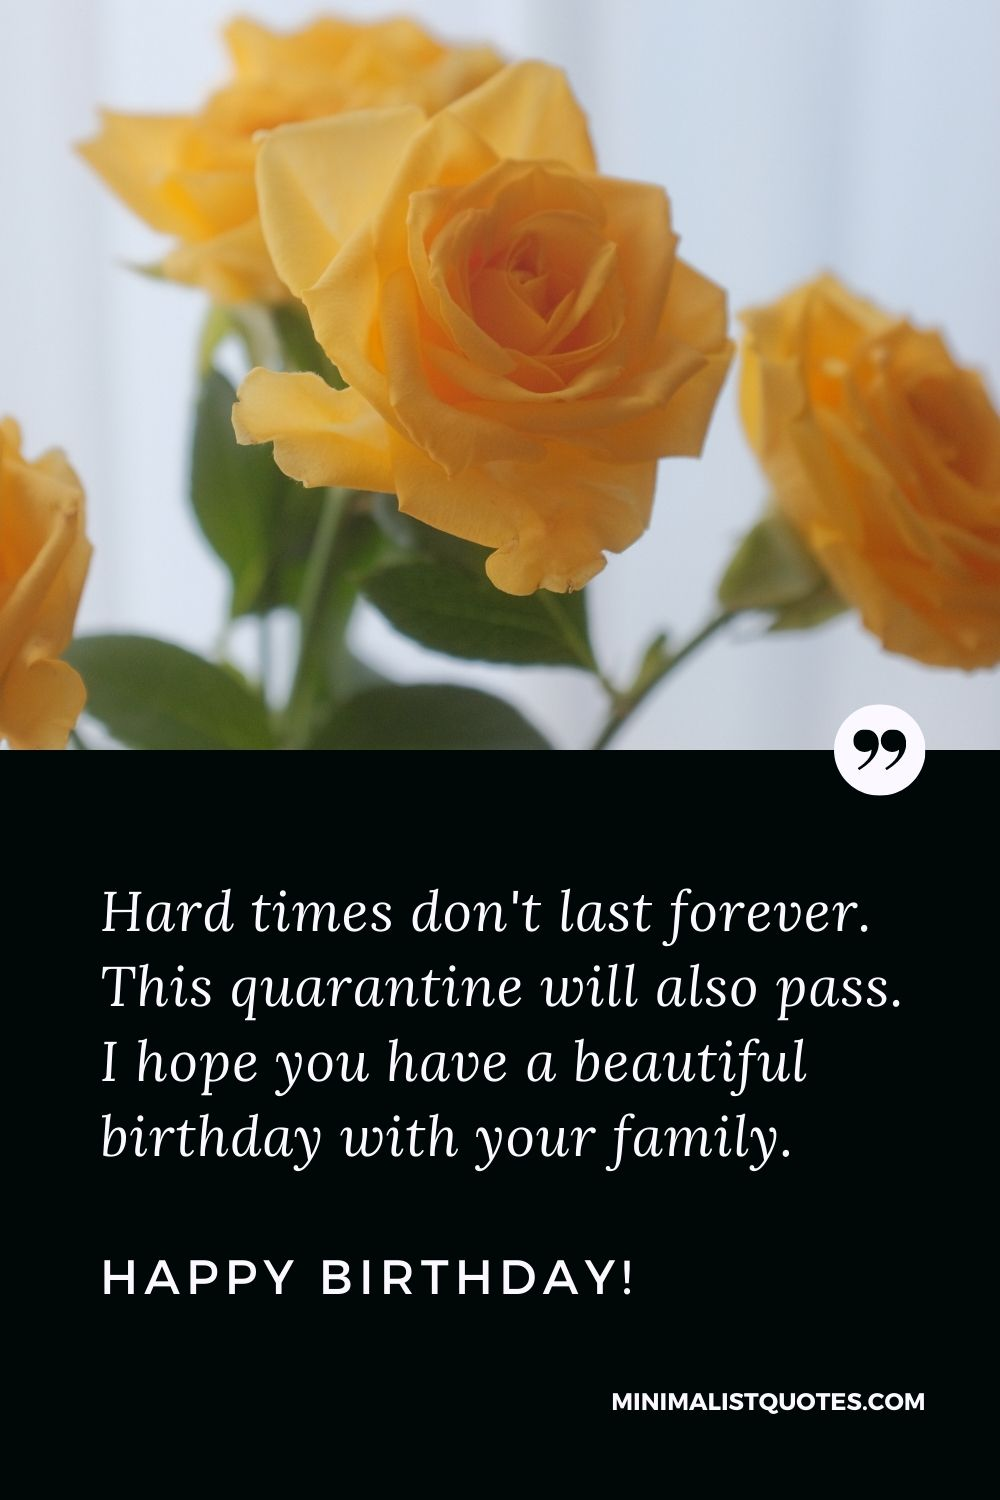 Quarantine Birthday Quote, Wish & Message With Image: Hard times don't last forever. This quarantine will also pass. I hope you have a beautiful birthday with your family. Happy Birthday!